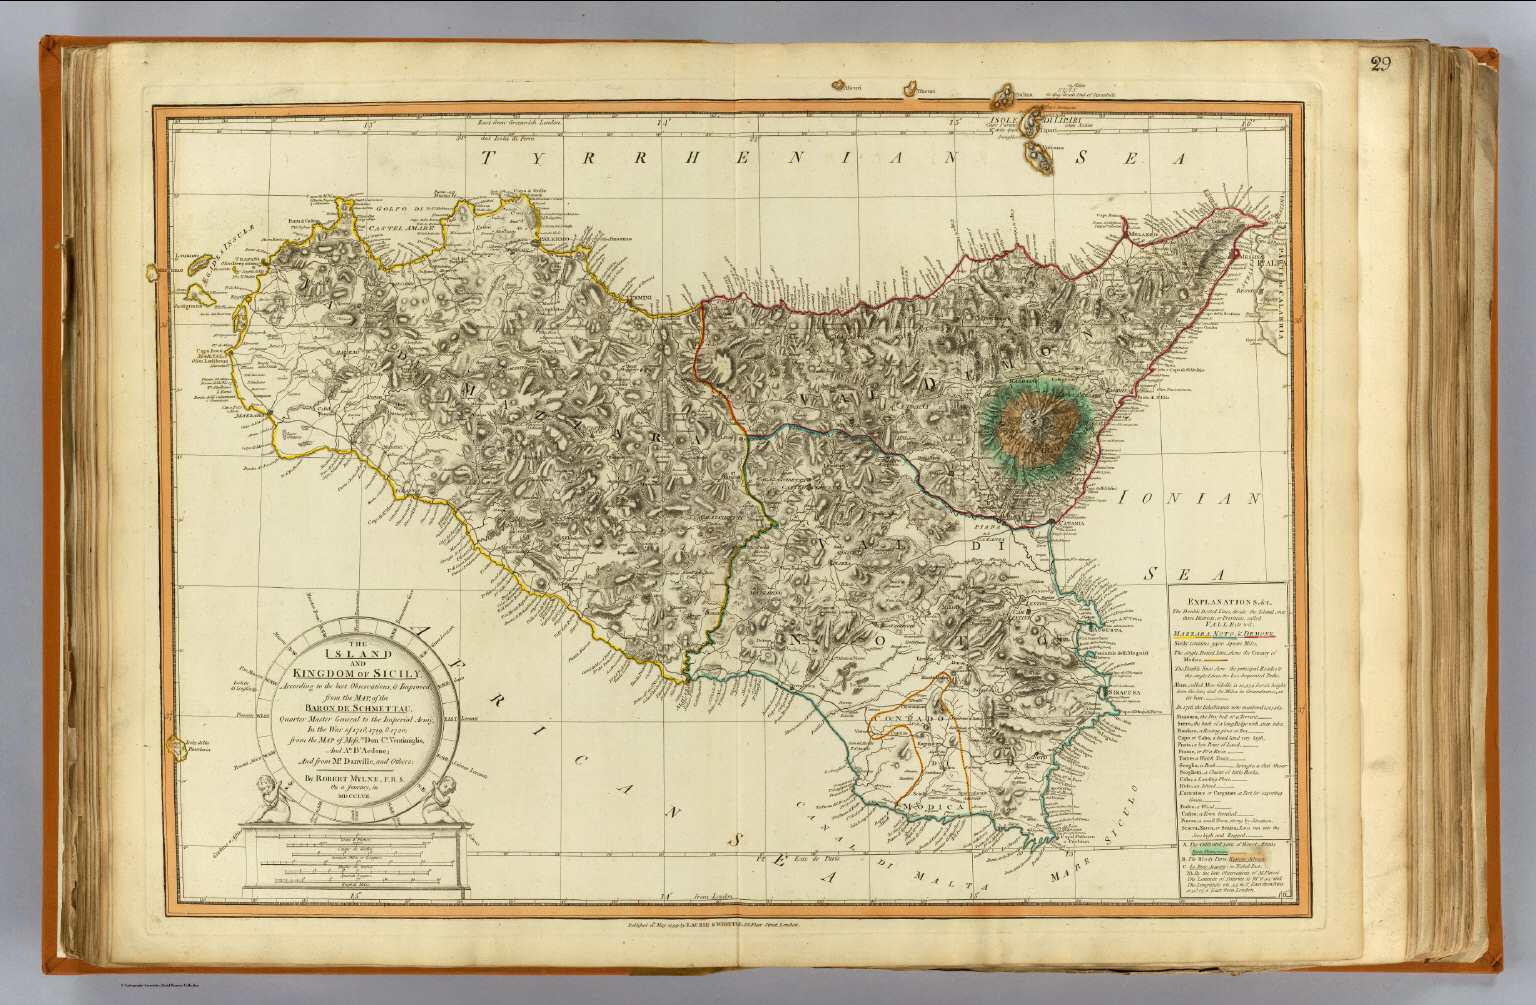 Sicily. - David Rumsey Historical Map Collection on lampedusa island italy map, viceroyalty of peru on map, county of tripoli on map, kingdom of sicily flag, battle of cannae on map, principality of antioch on map, ryukyu kingdom on map,